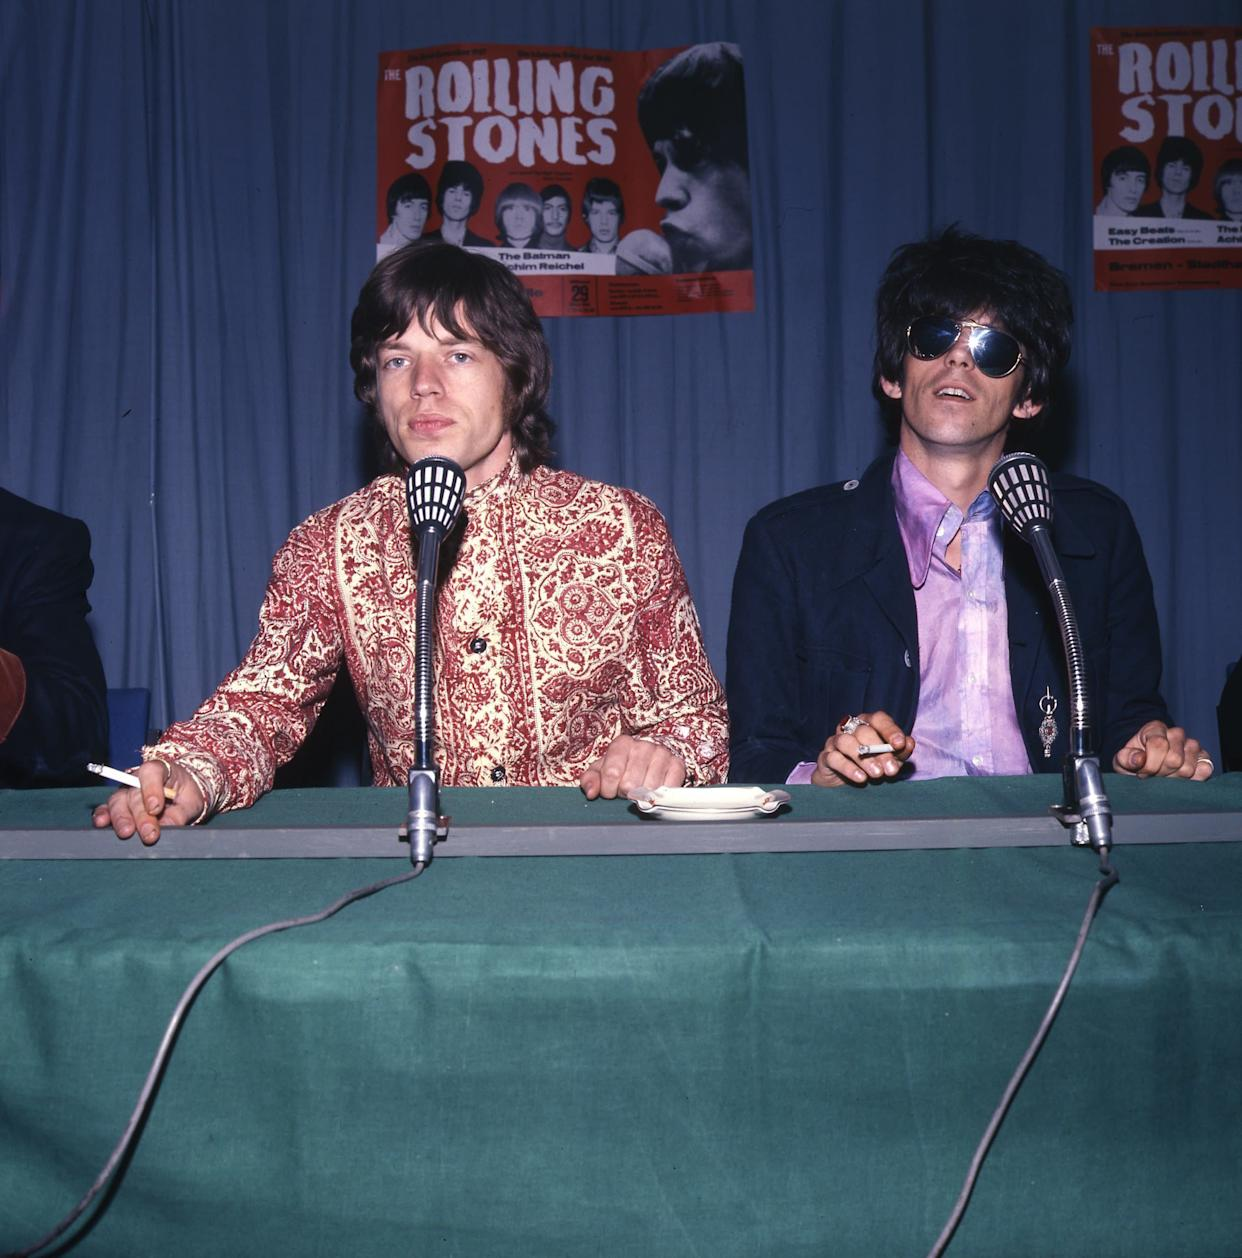 BREMEN, GERMANY - MARCH 29: Mick Jagger and Keith Richards of The Rolling Stones at a press conference at the Stadthalle on March 29th 1967 in Bremen, Germany. (Photo by K & K Ulf Kruger OHG/Redferns)